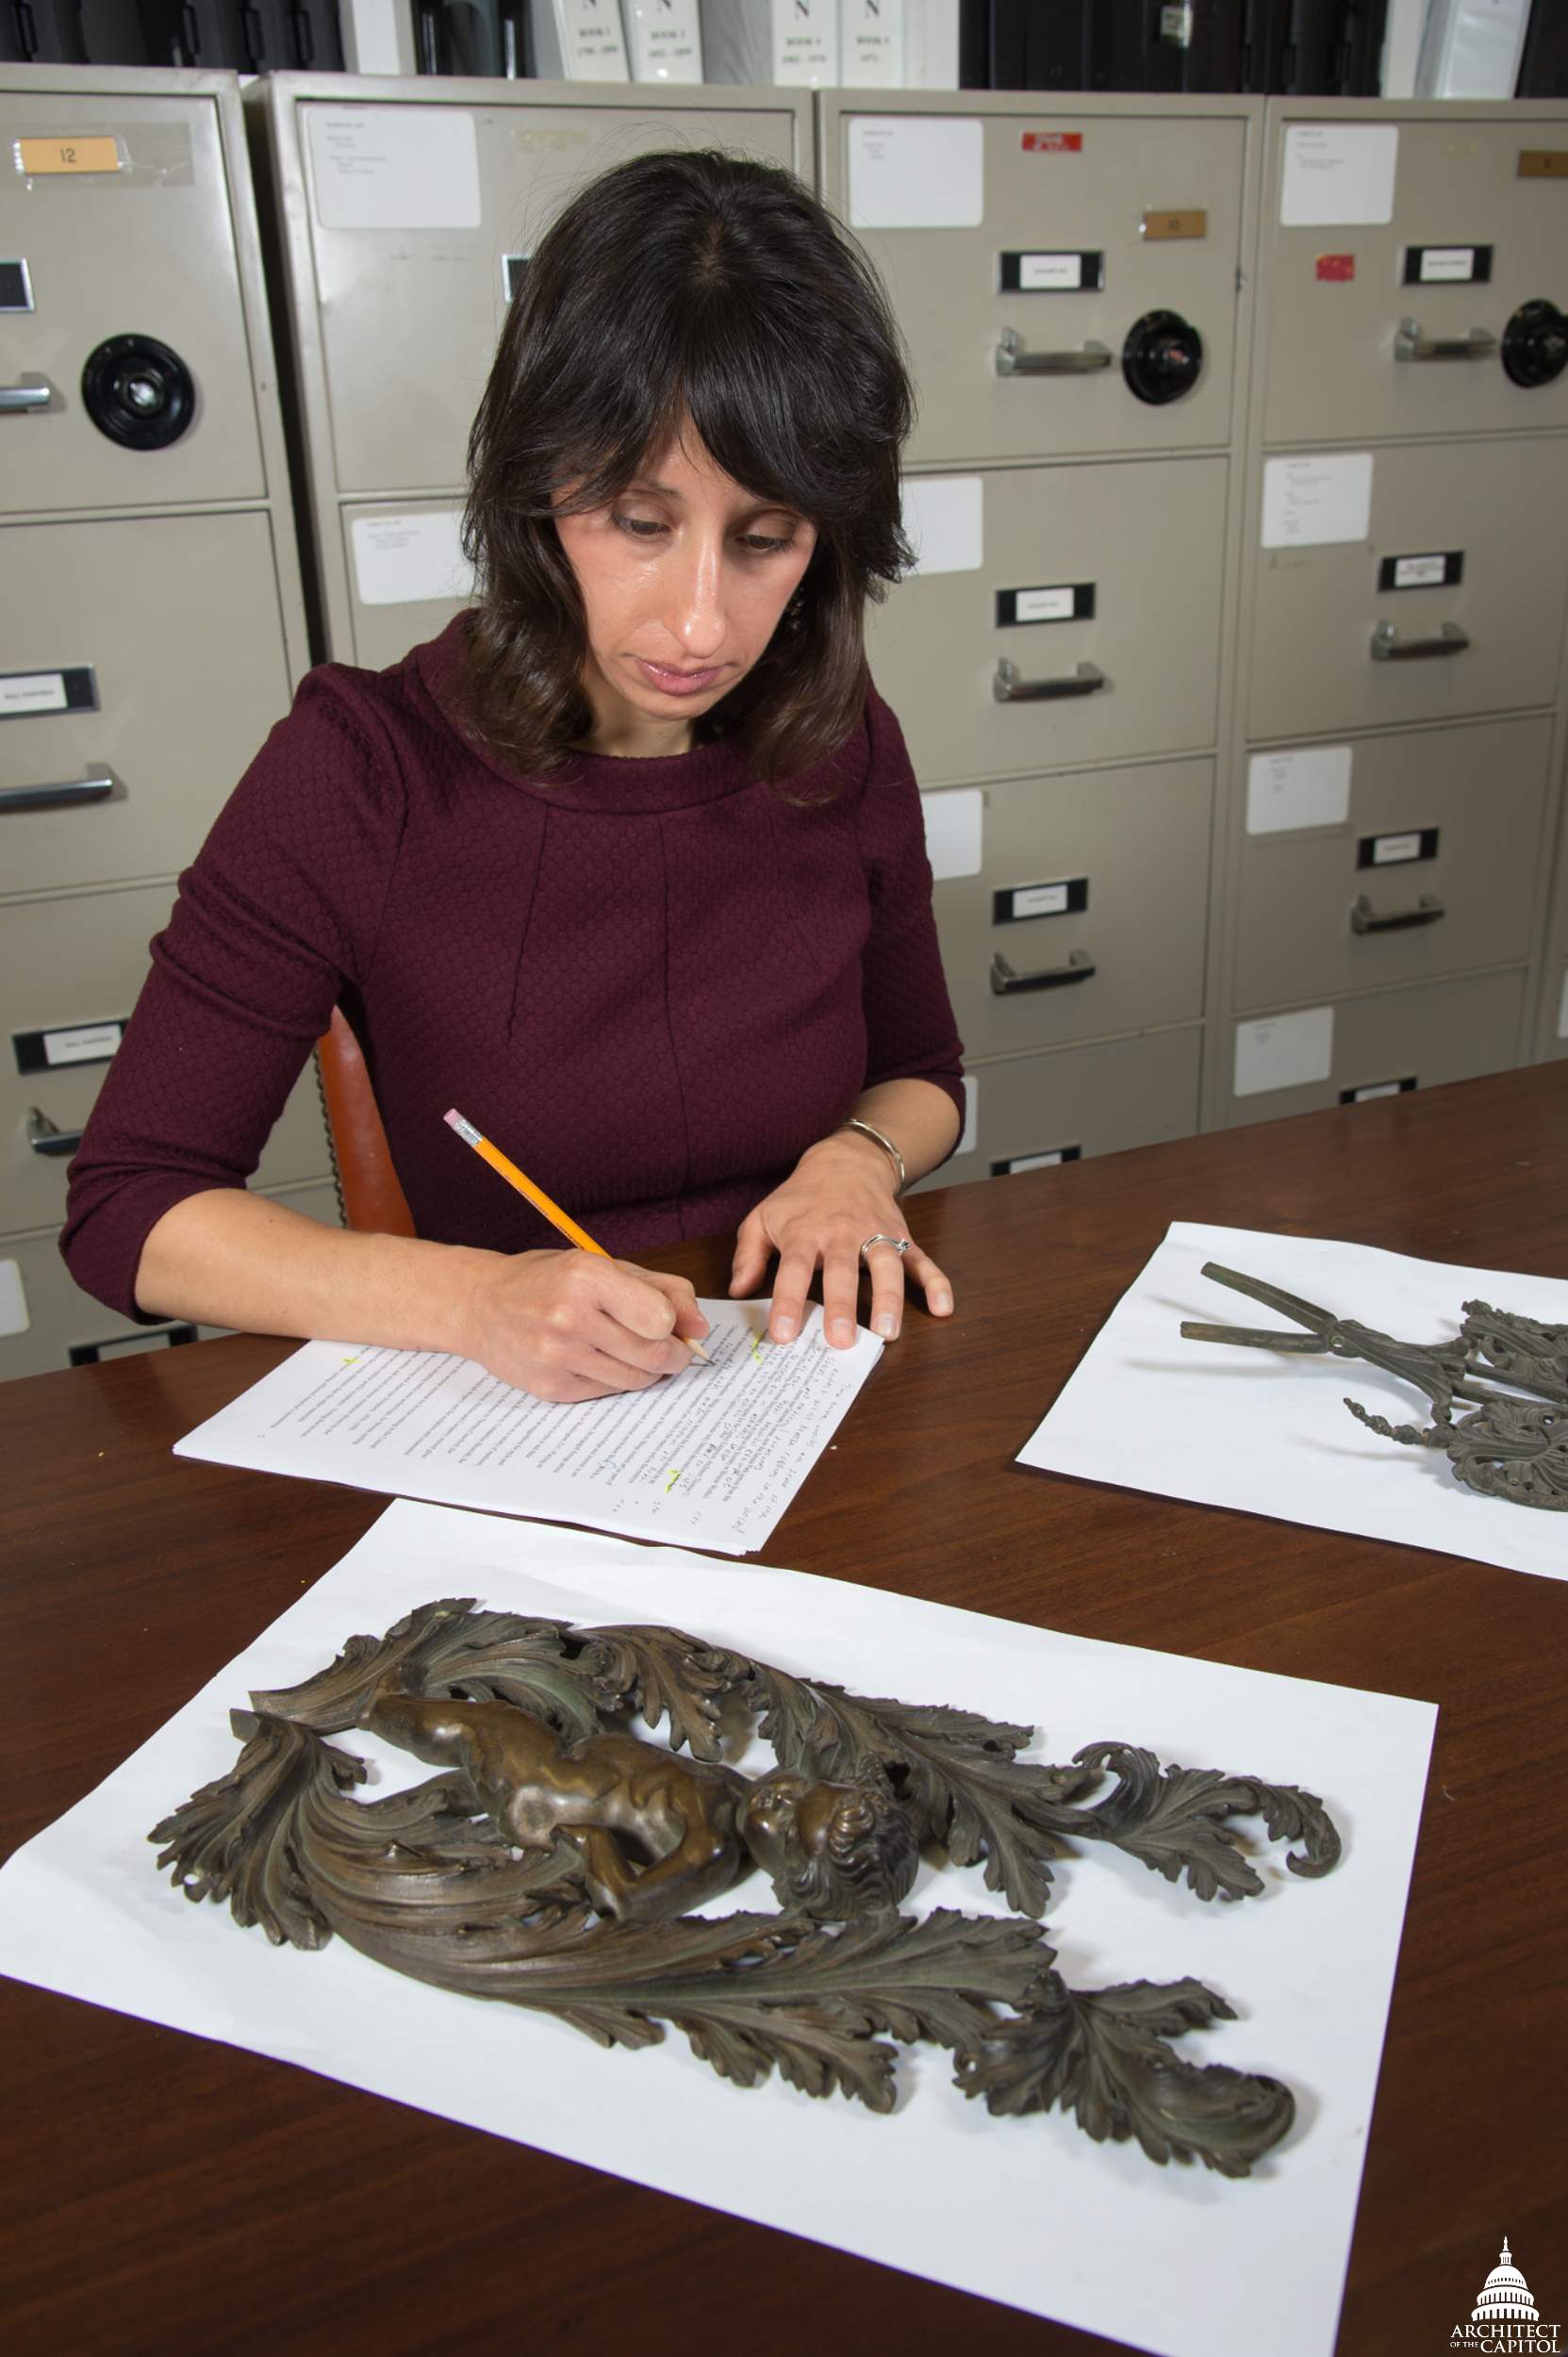 Jennifer Blancato, Office of the Curator, carefully analyzes art.